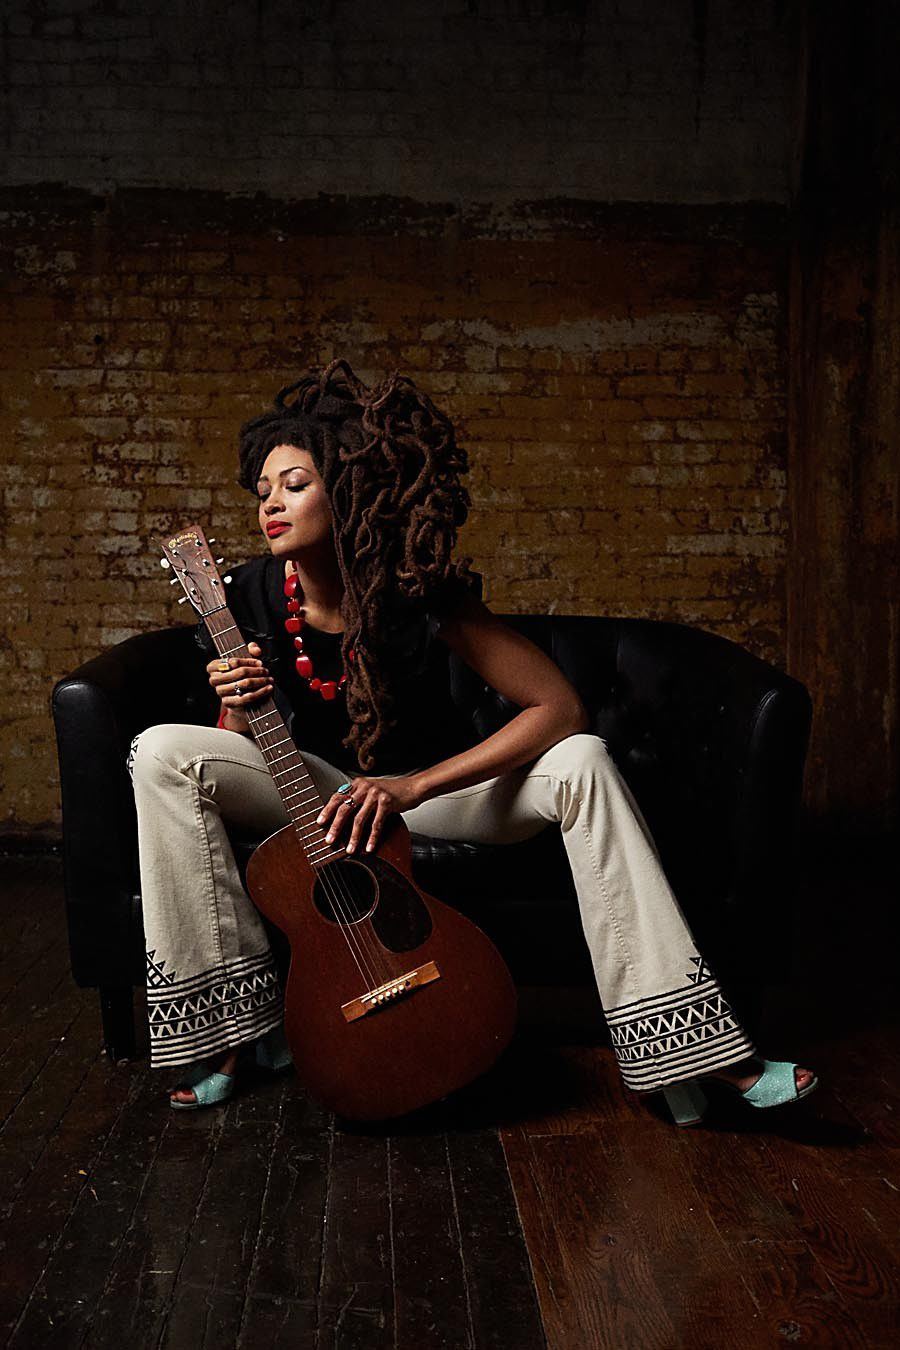 Valerie June, right on Time_lowres